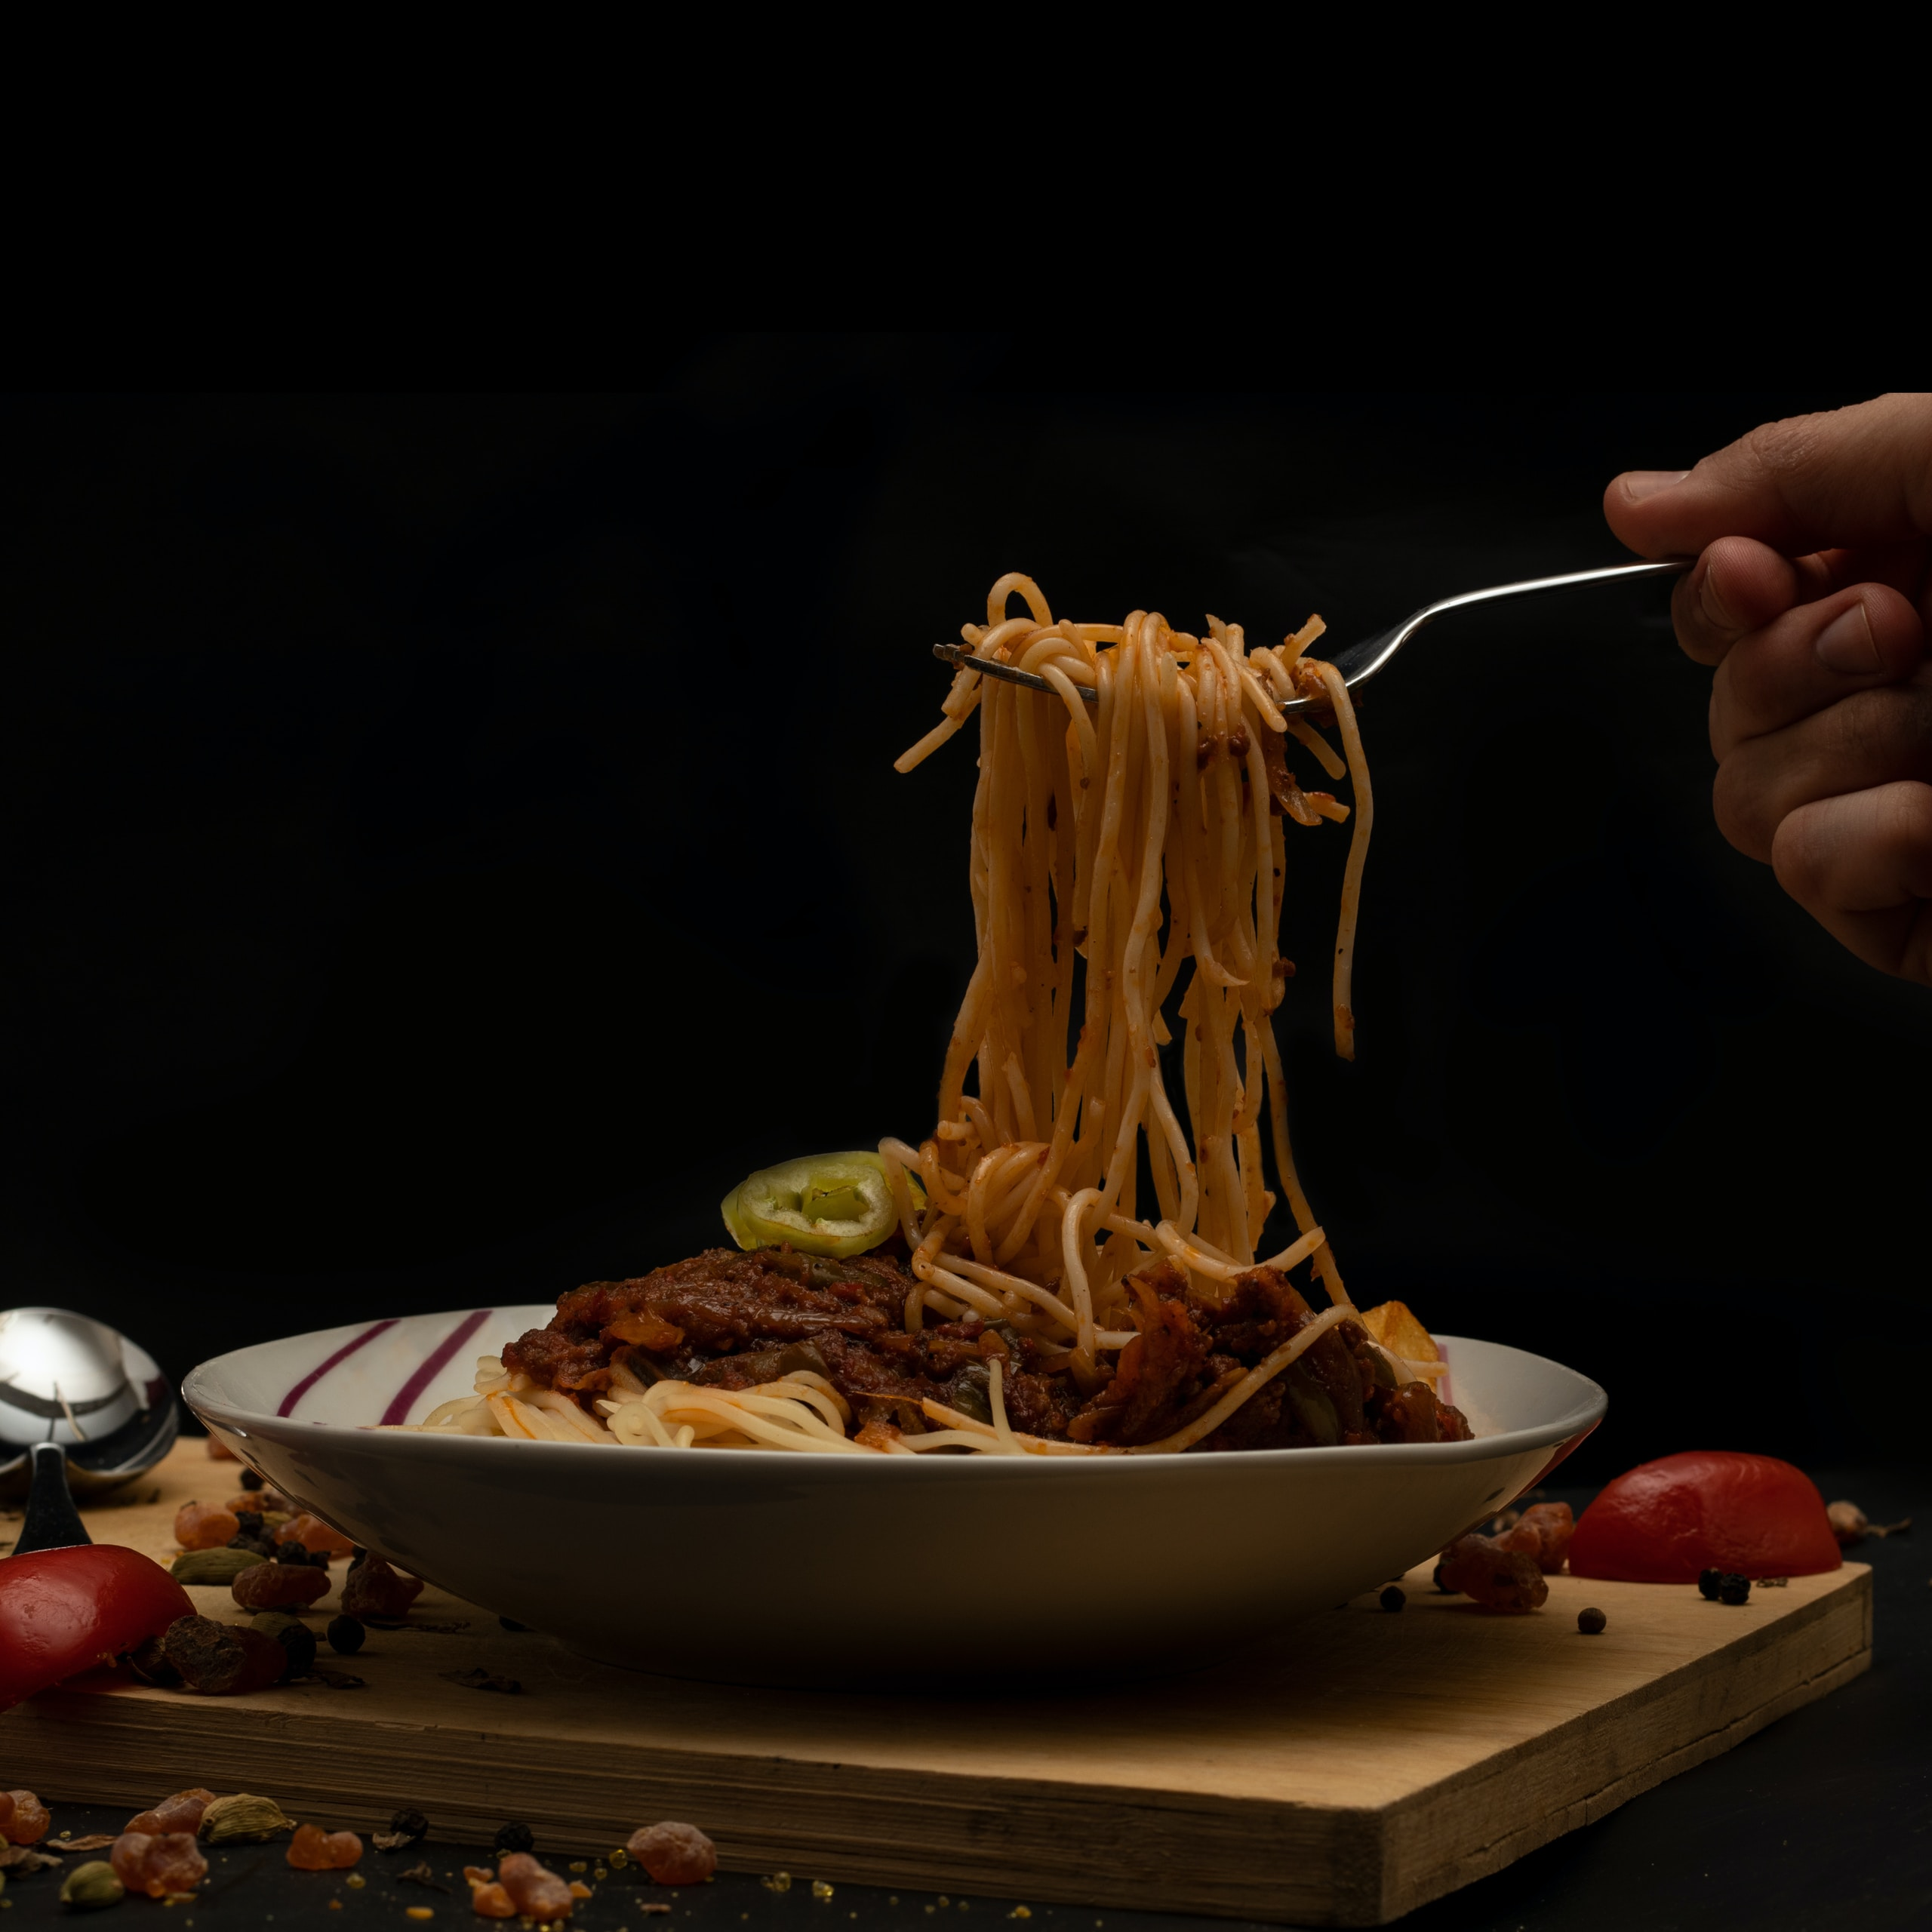 person holding stainless steel spoon and fork eating pasta